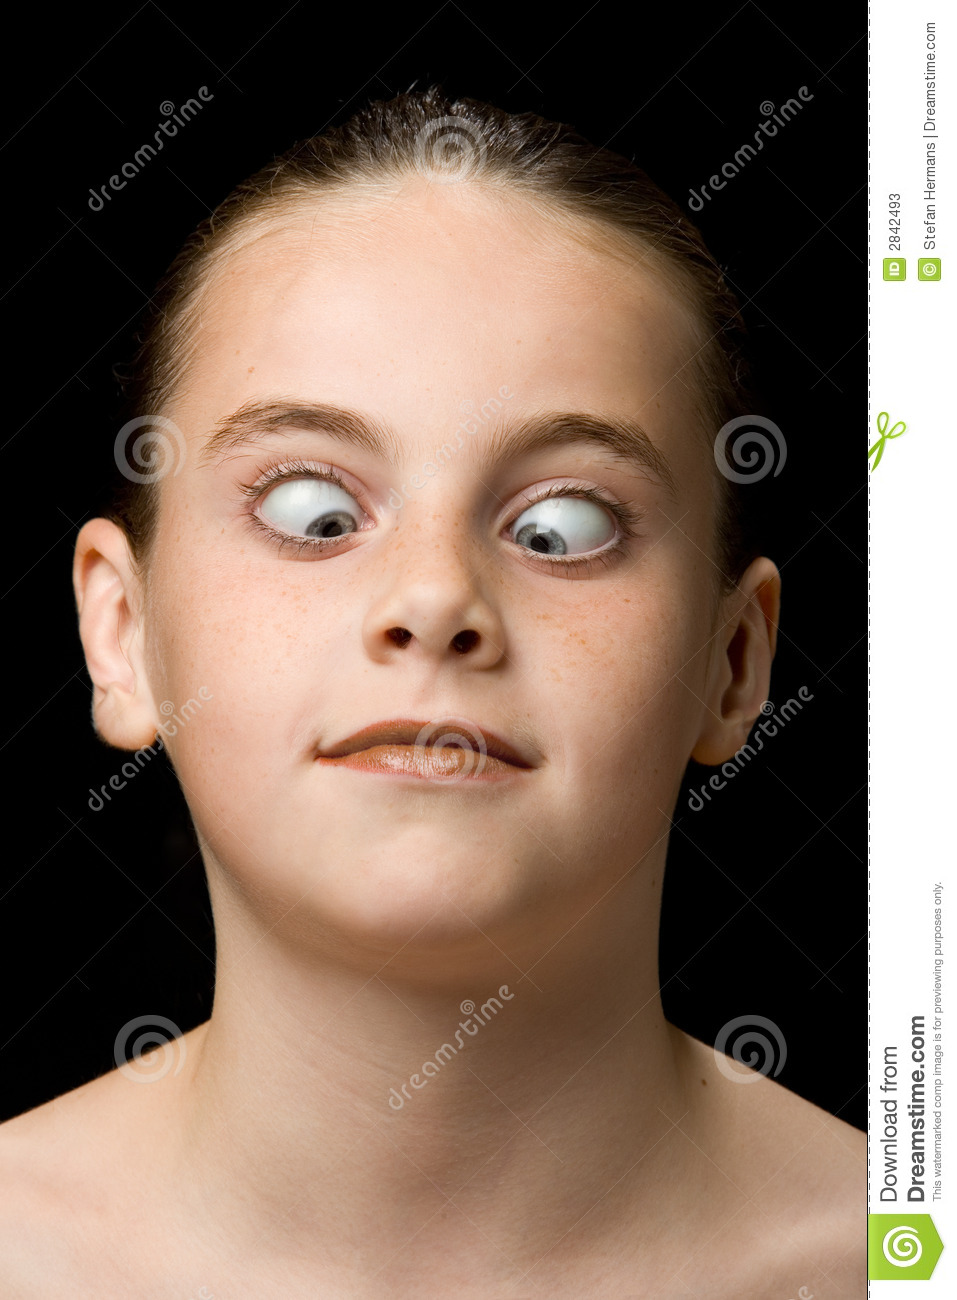 child looking at nose stock photos